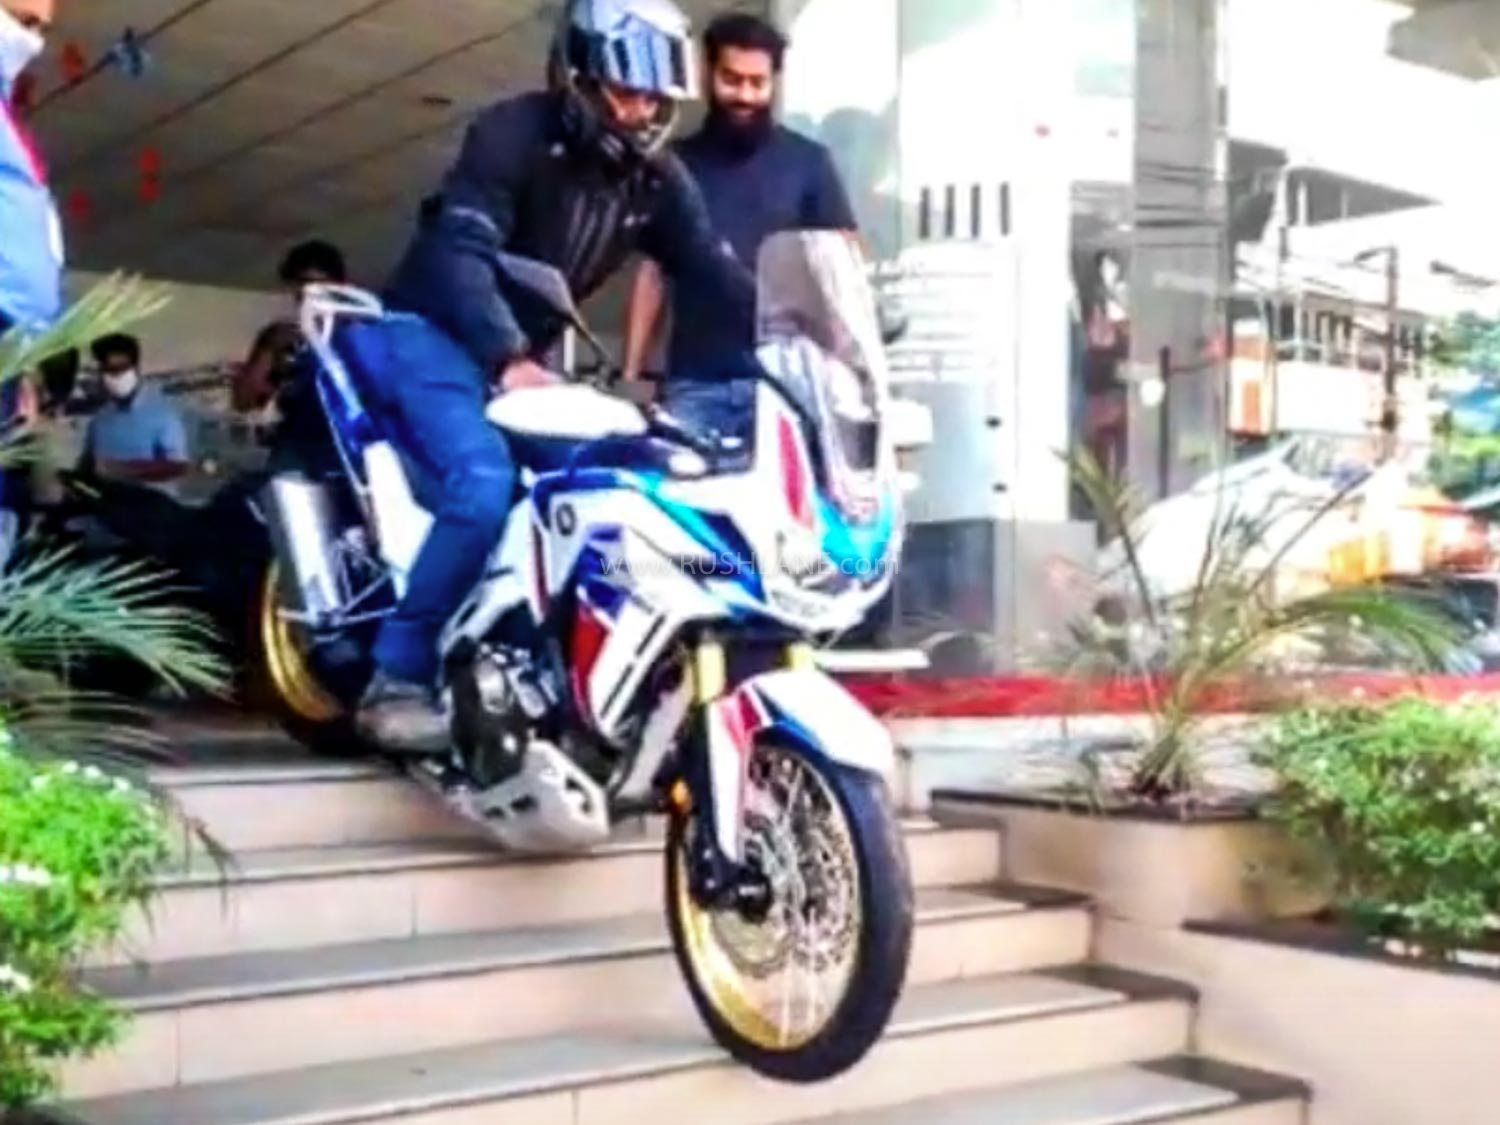 2020 Honda Africa Twin owner riding his new bike out of showroom